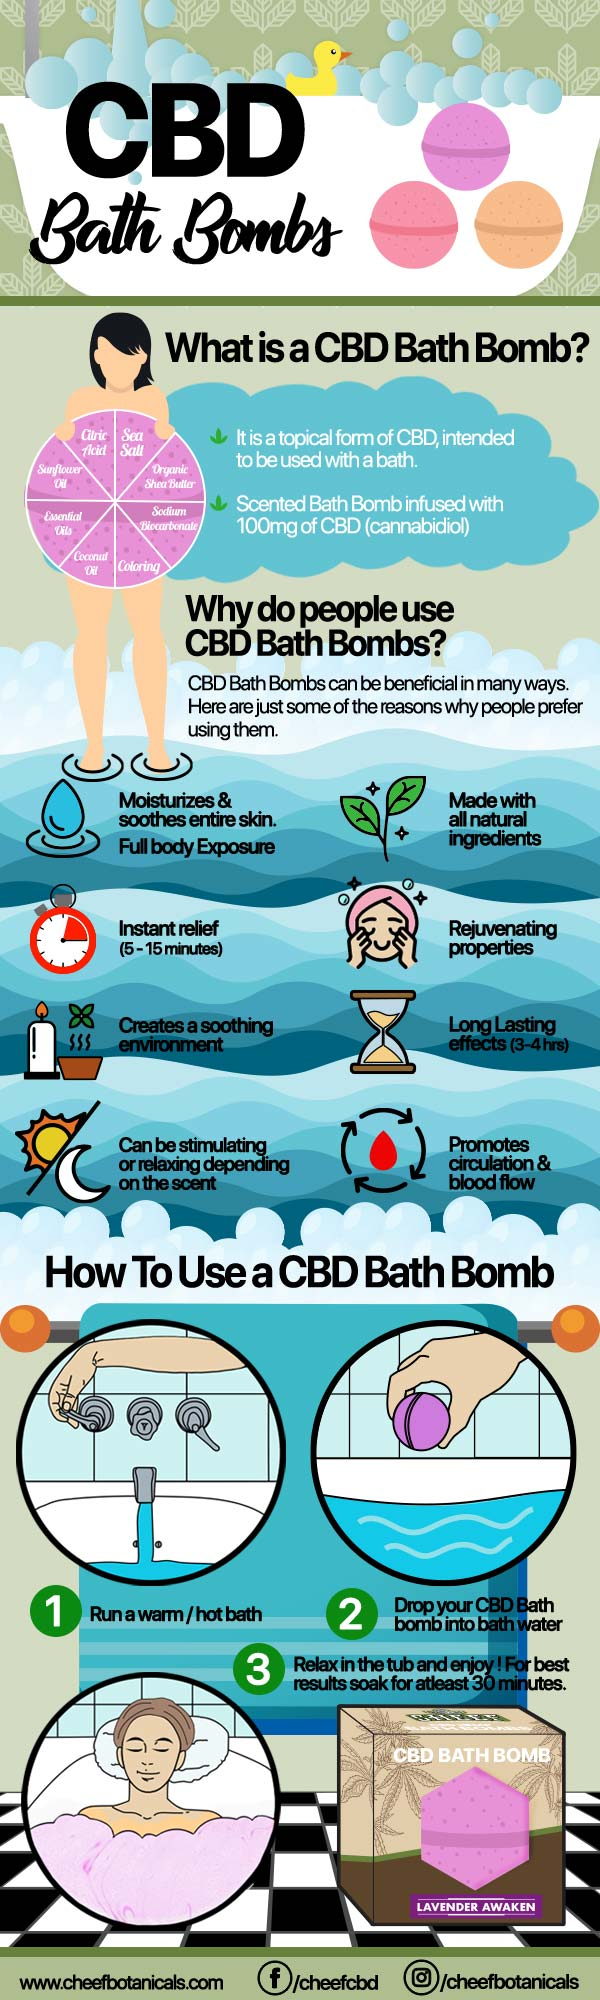 How to use a CBD bath bomb infographic